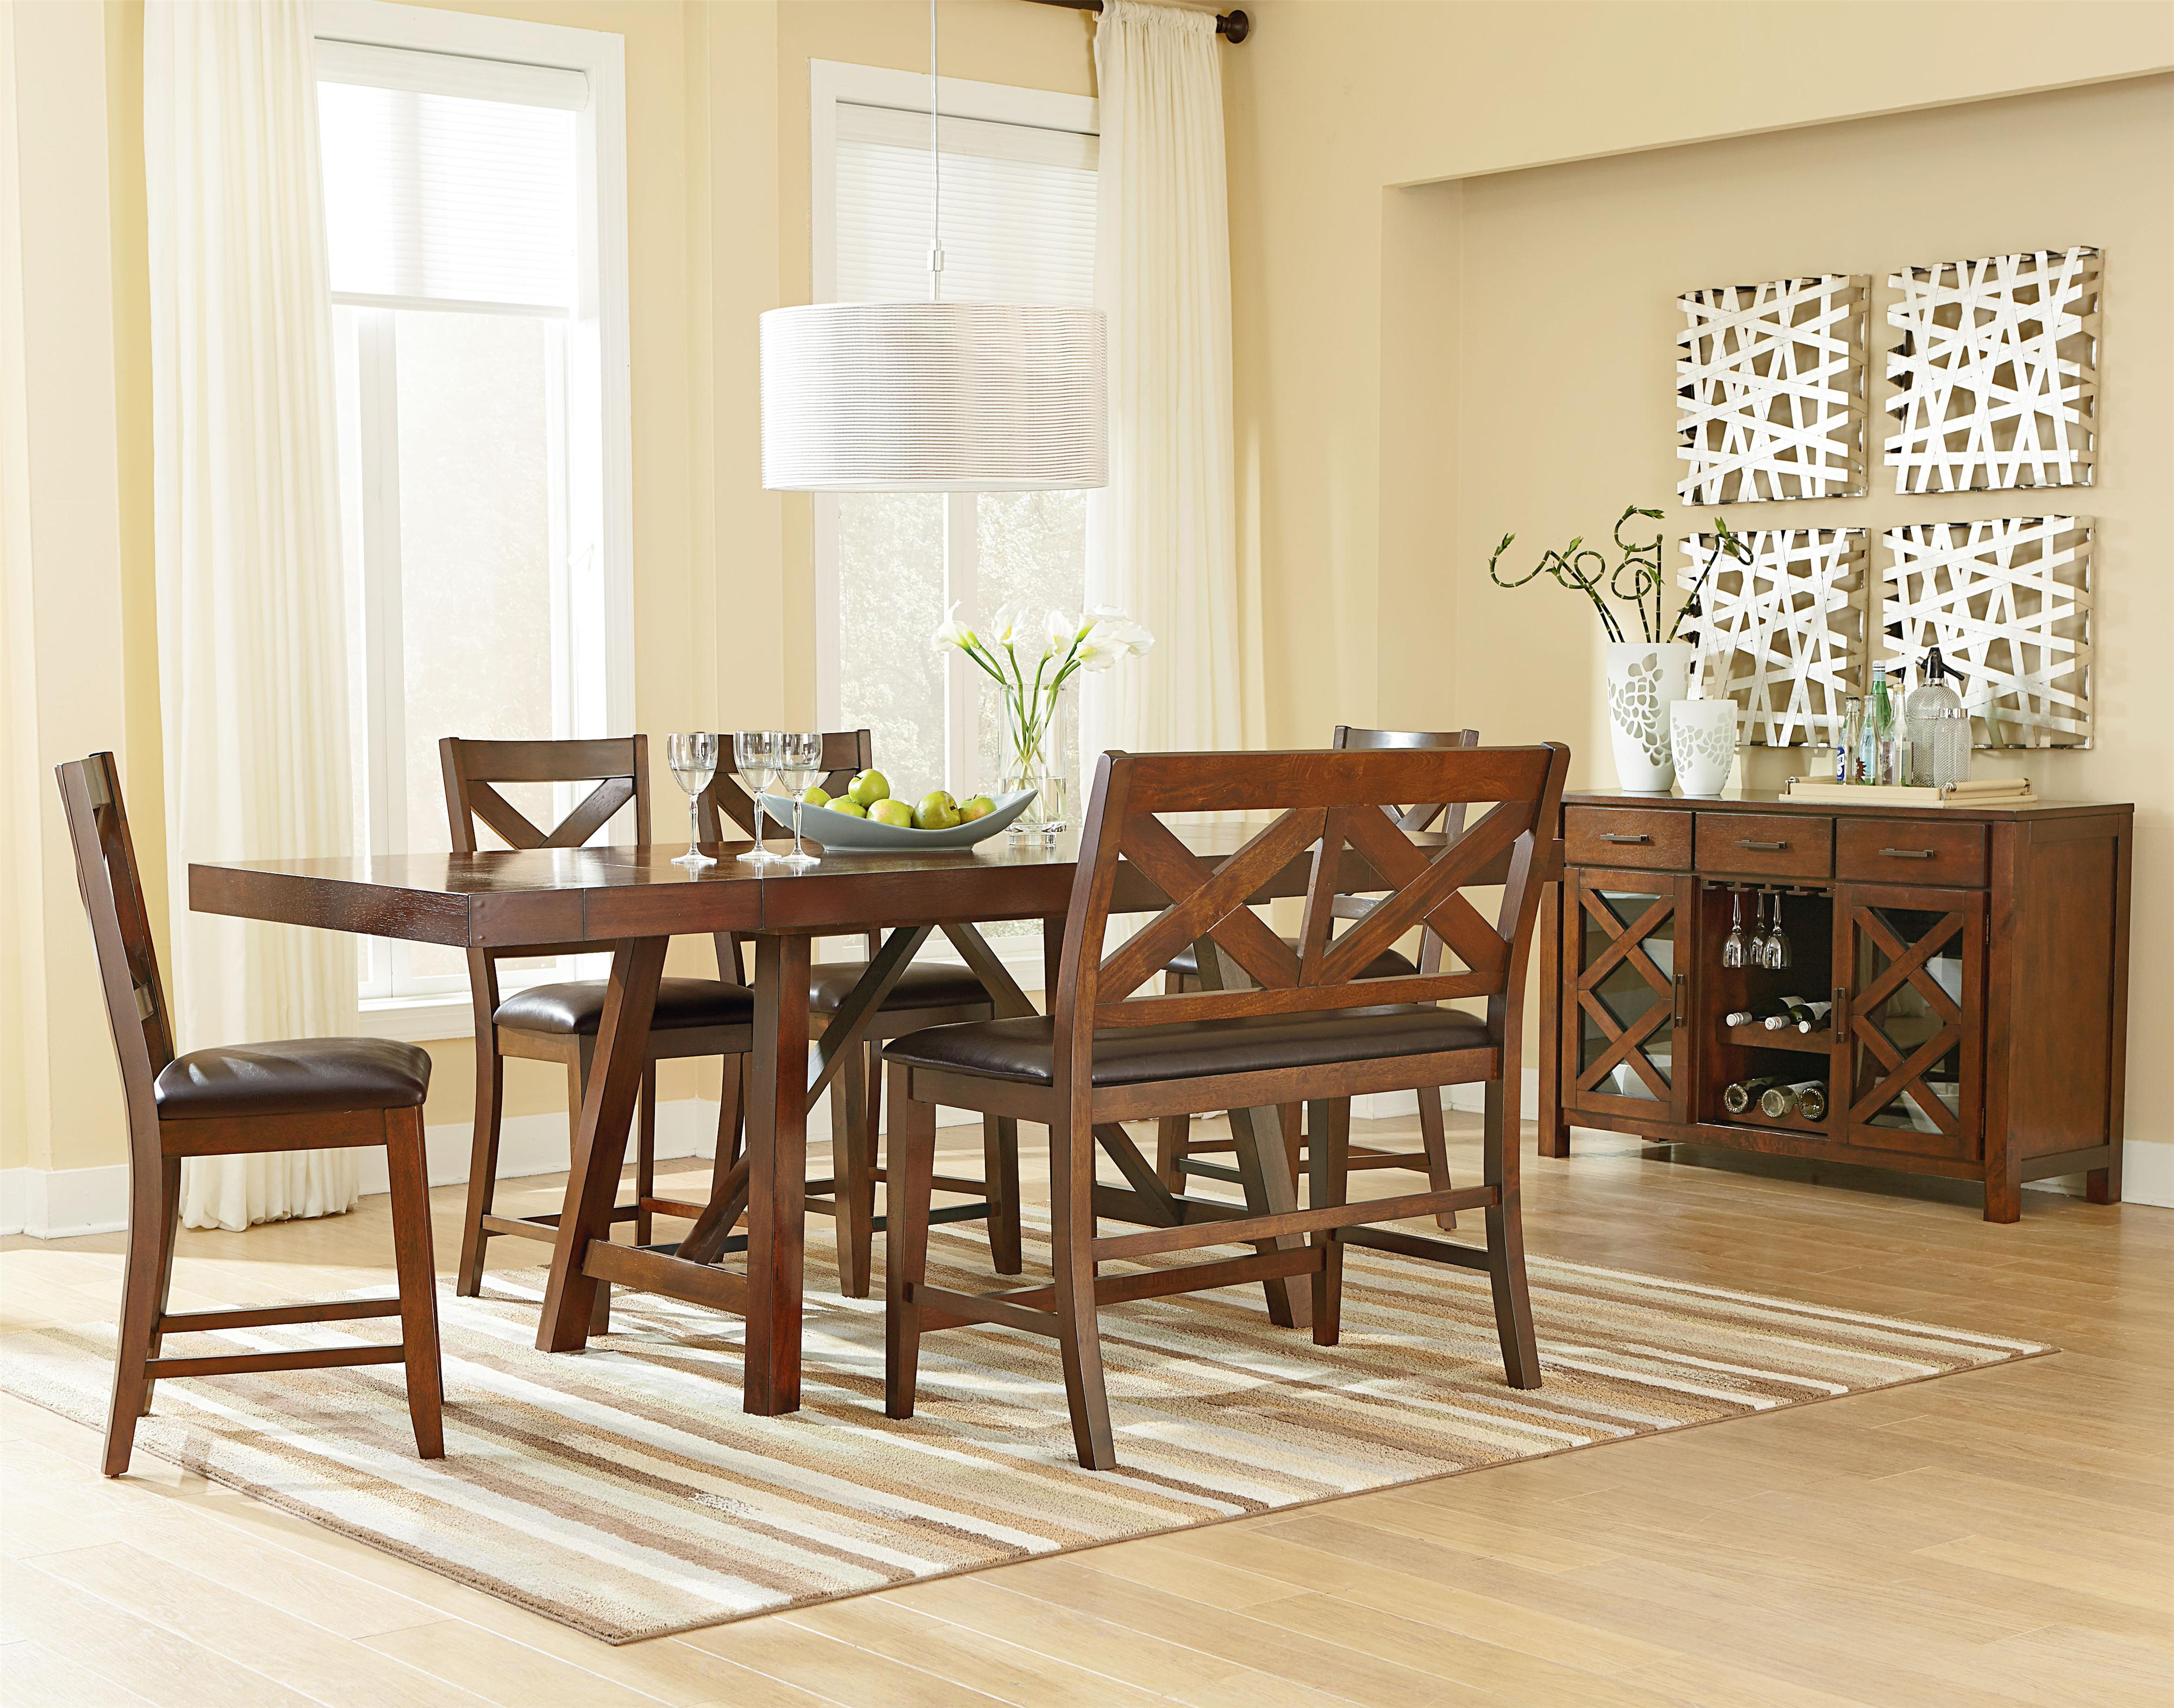 Omaha brown casual dining room group by standard furniture for Casual dining room furniture